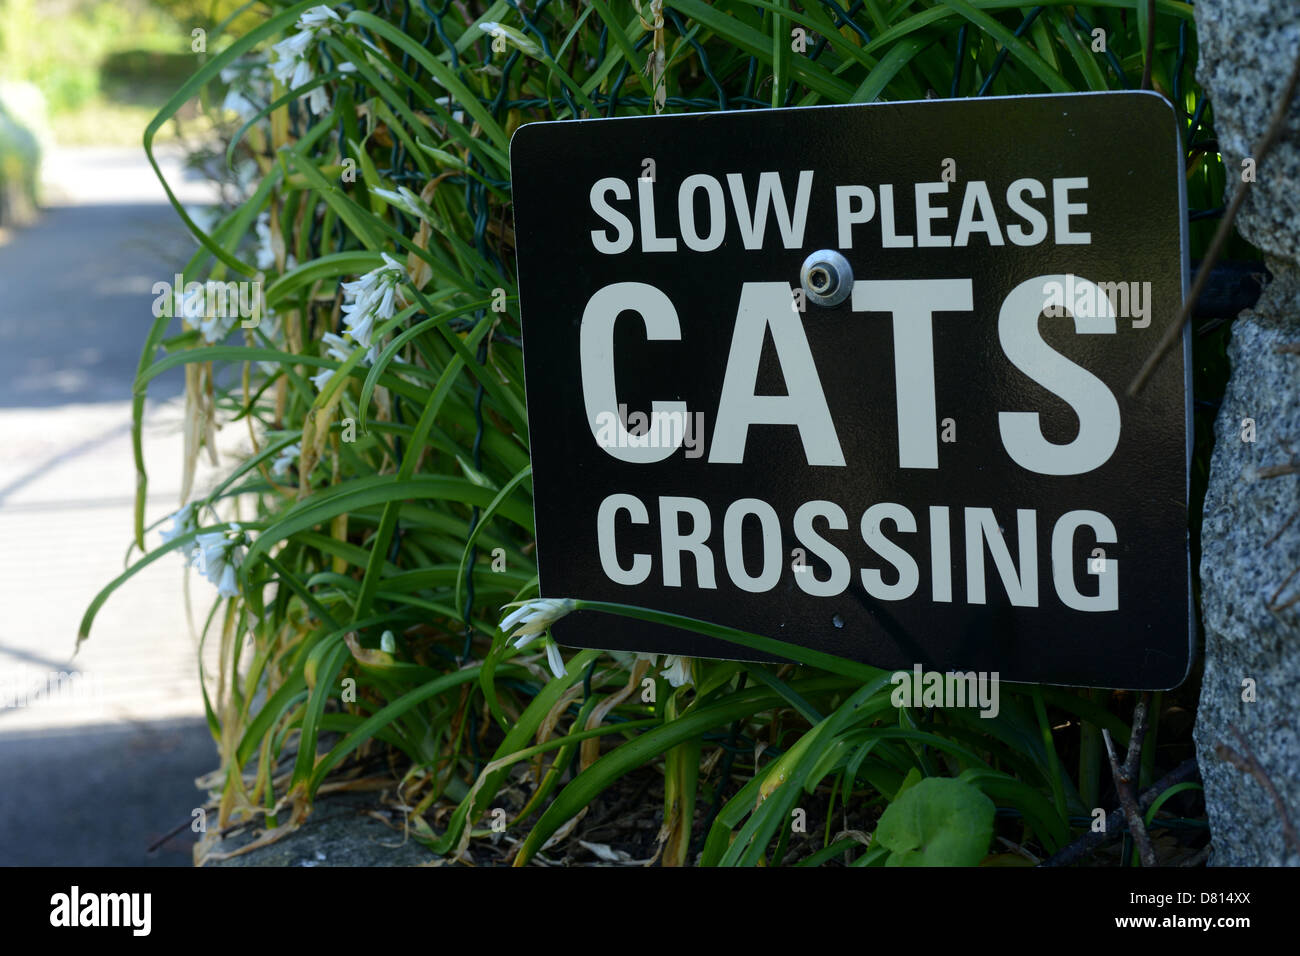 Cats crossing sign - Stock Image